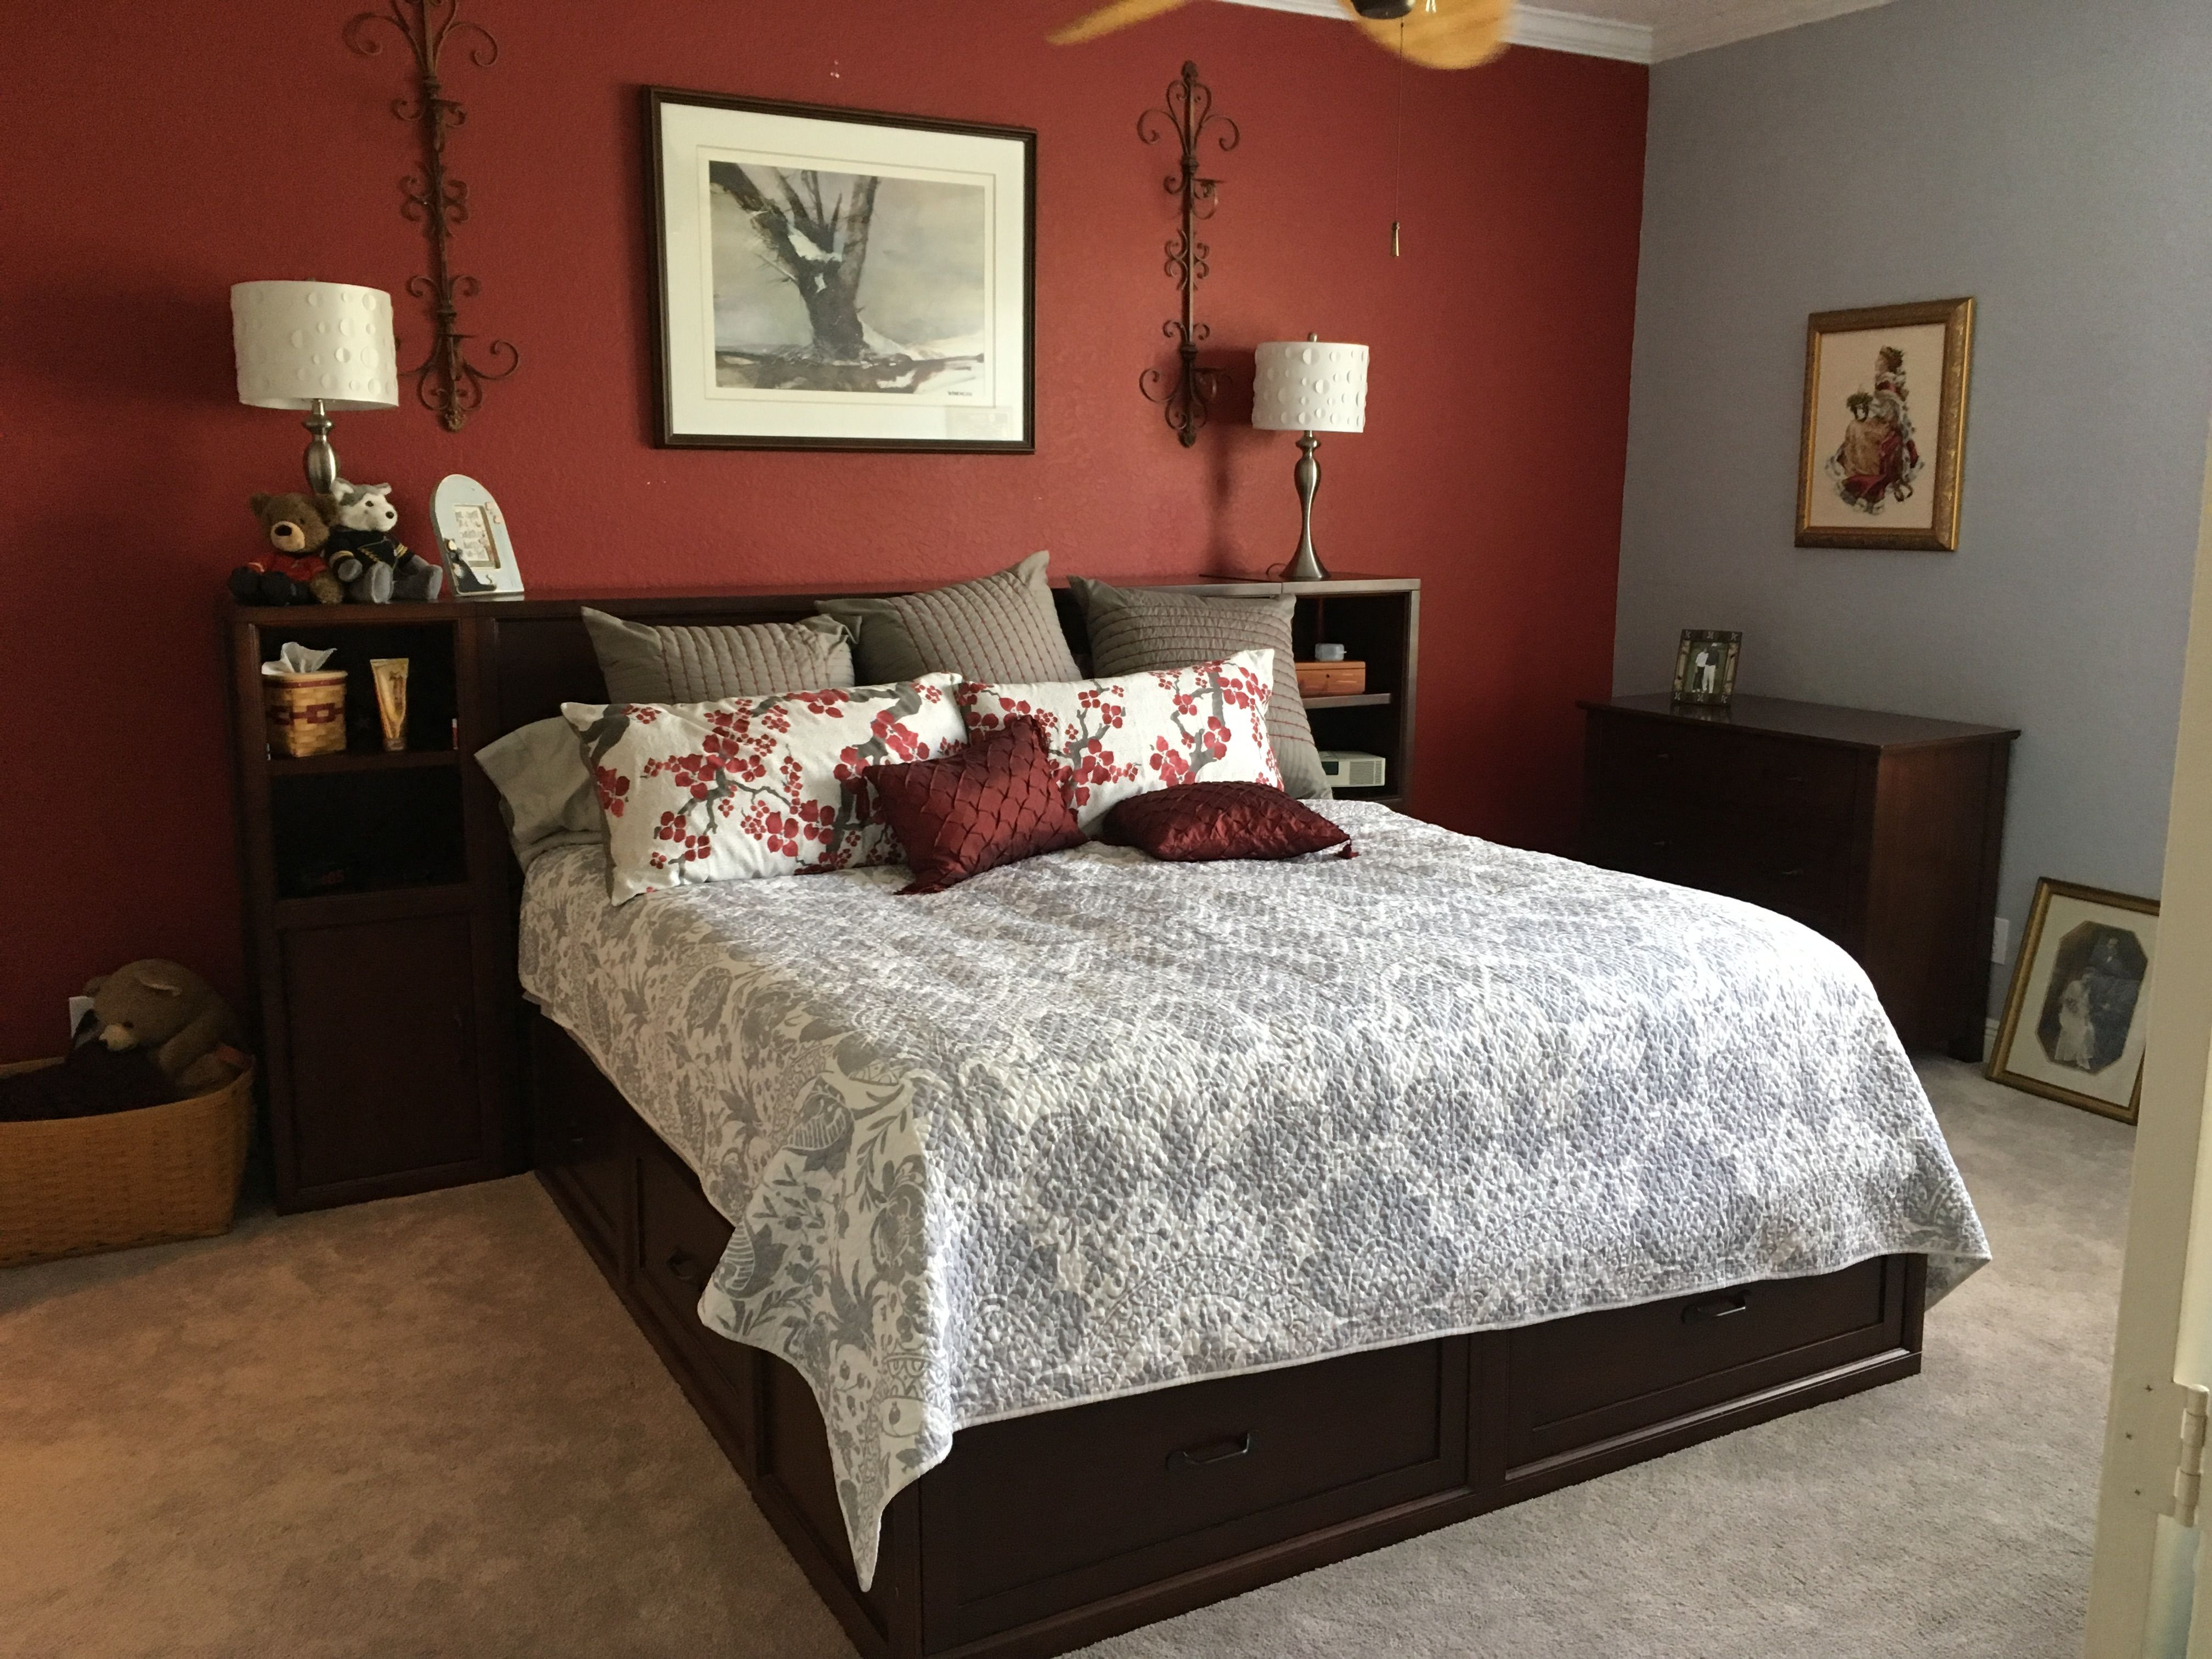 Master bedroom done with the Pottery Barn furniture from